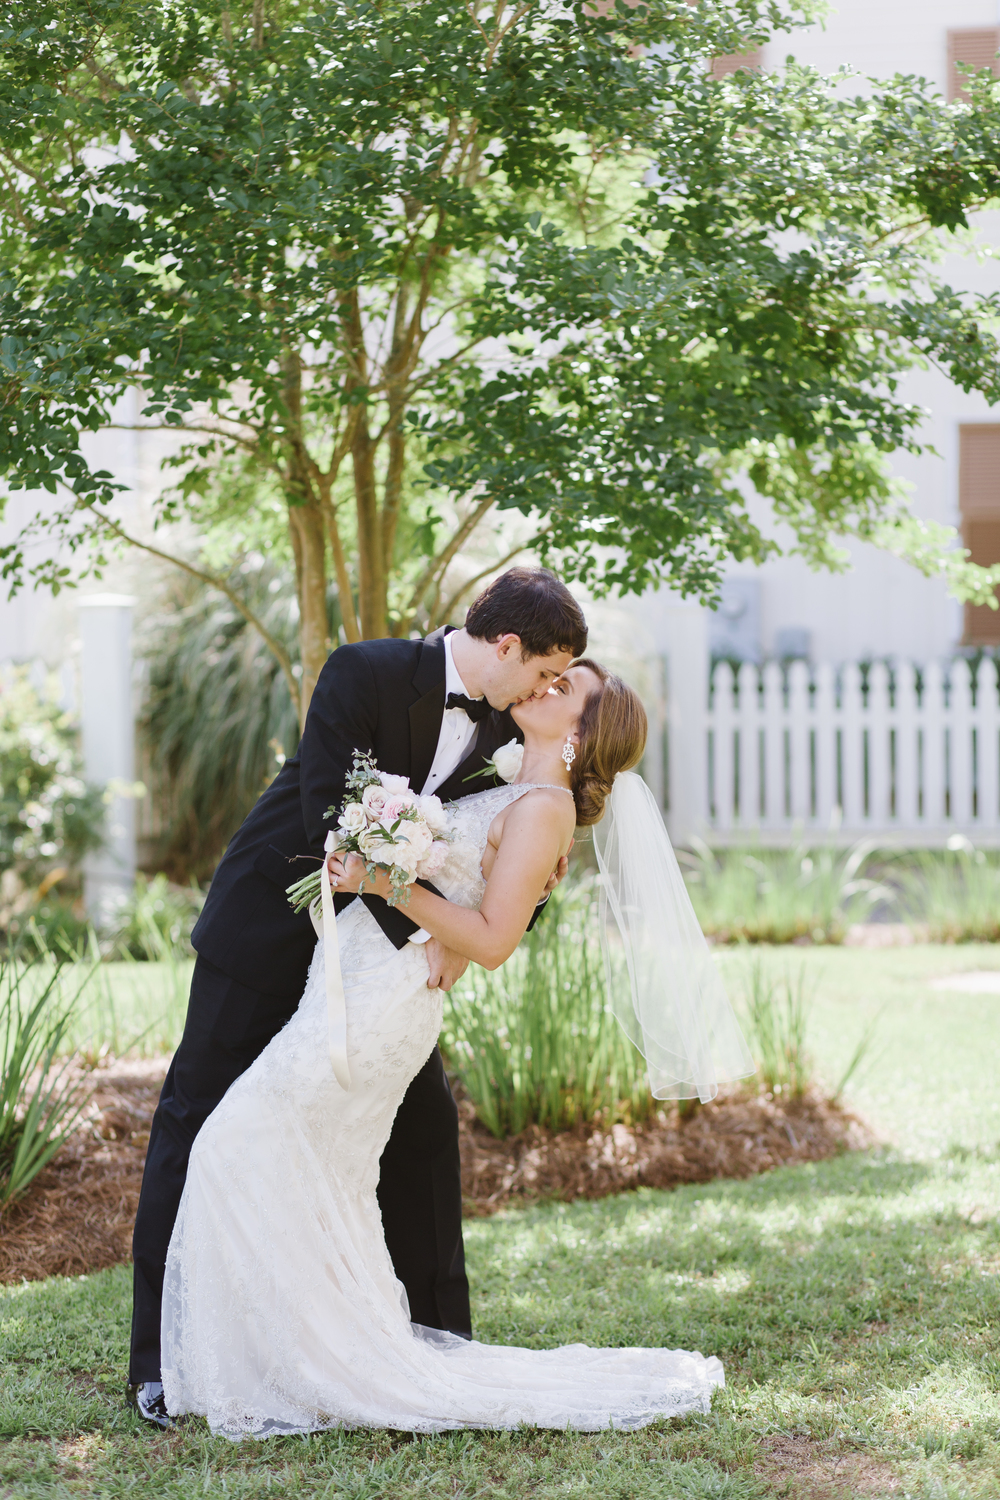 Ashleigh and Drew | Fairhope Wedding | Victoria Austin Designs | Dragonfly Photography